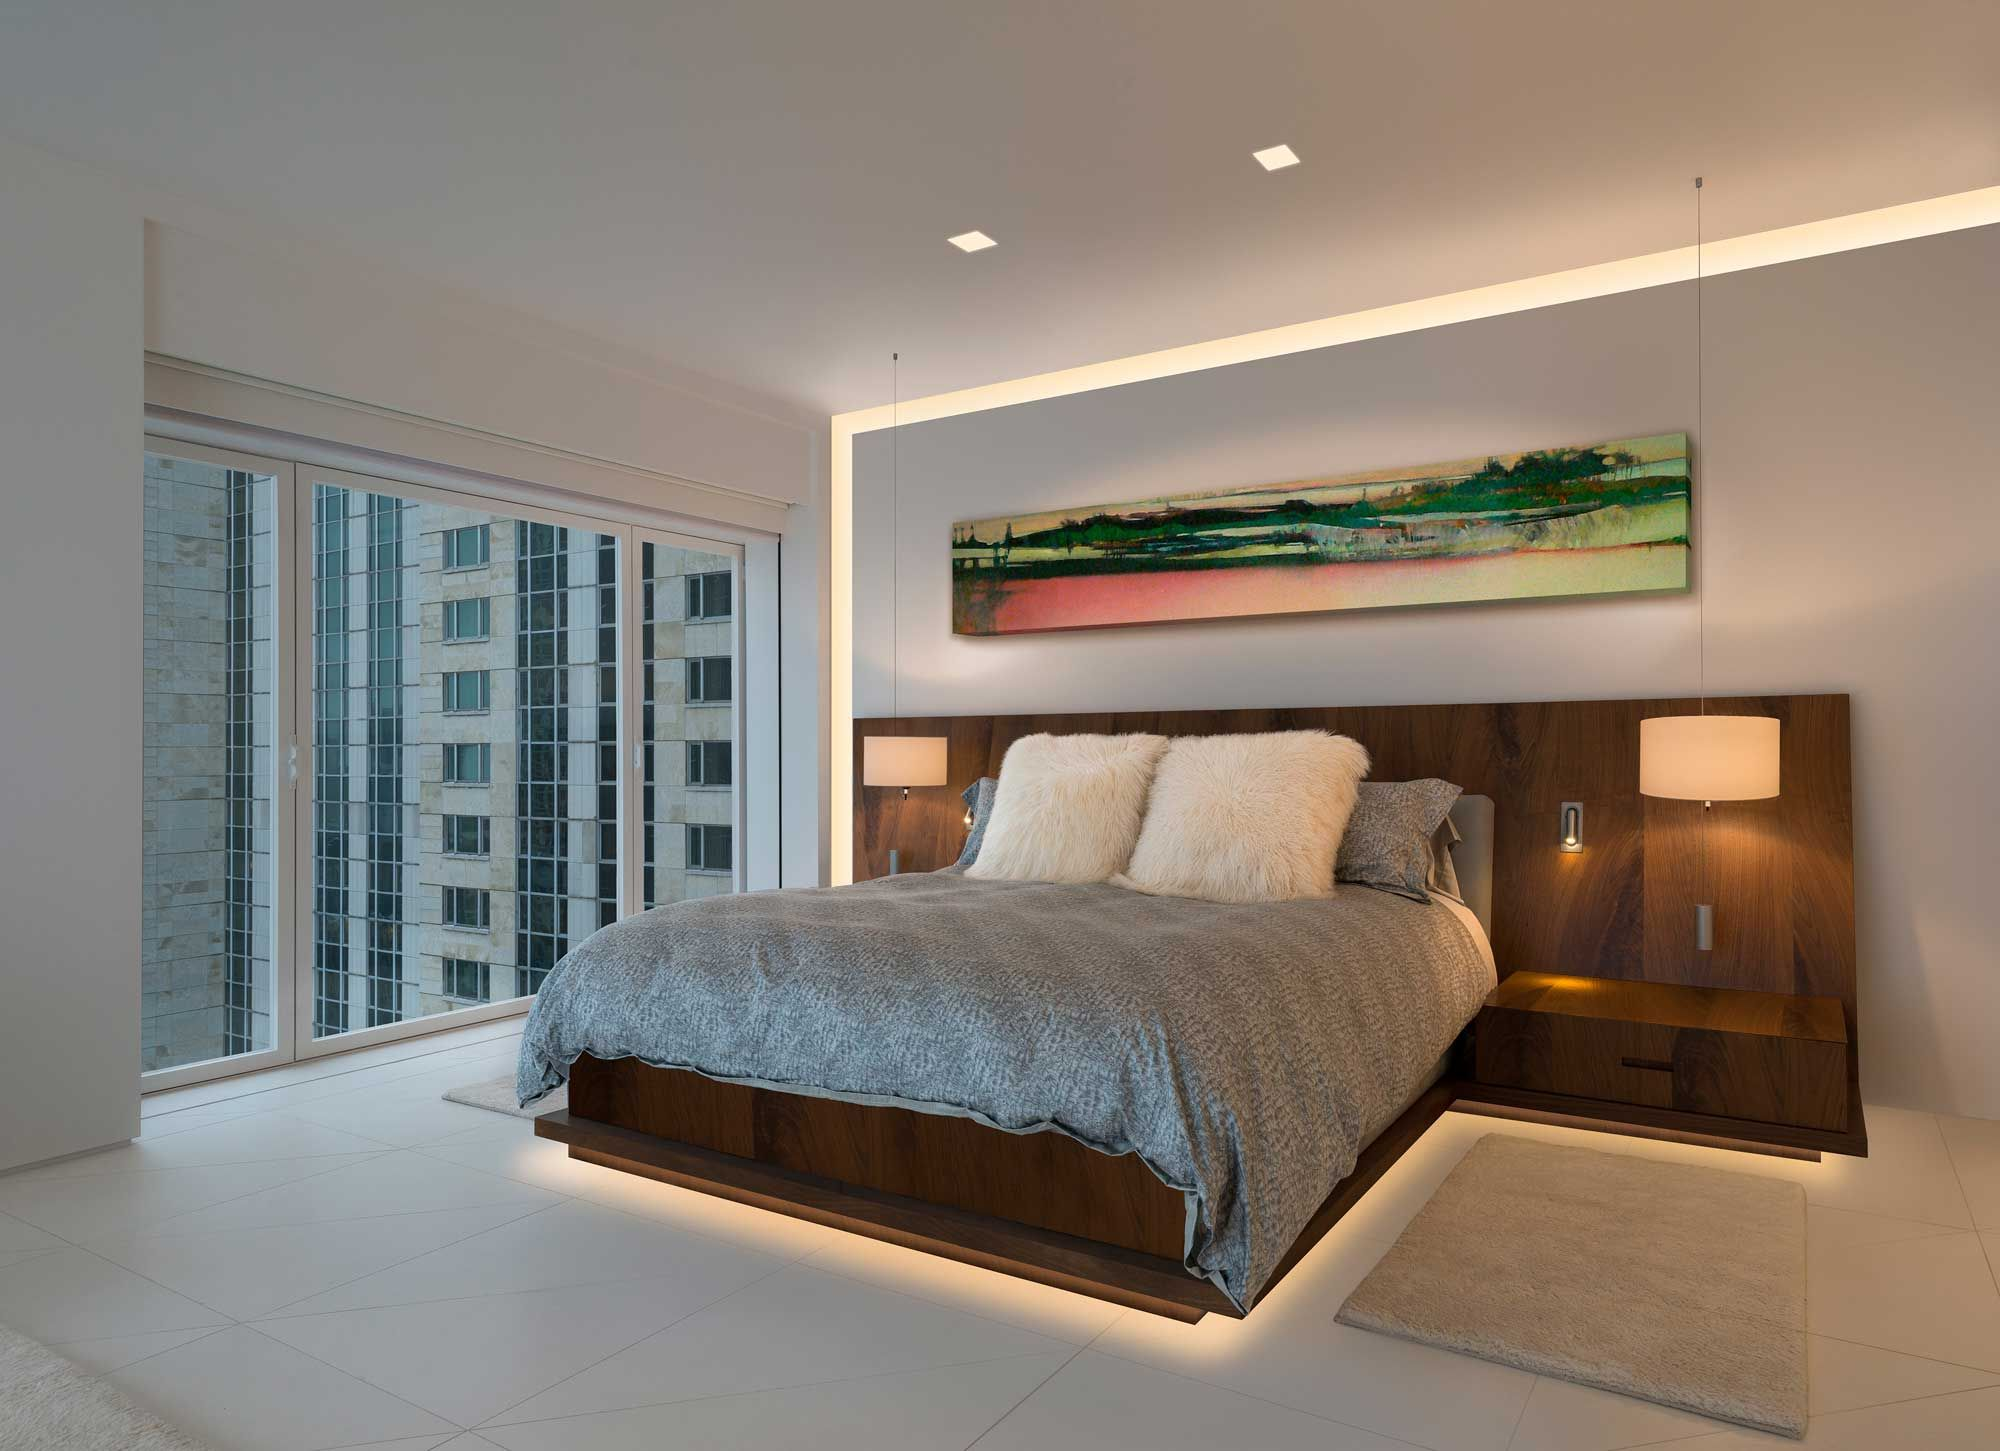 Soft Strip 2 3w Premium 24v Warm White Edge Lighting At Lightology Luxurious Bedrooms Home Contemporary Bedroom